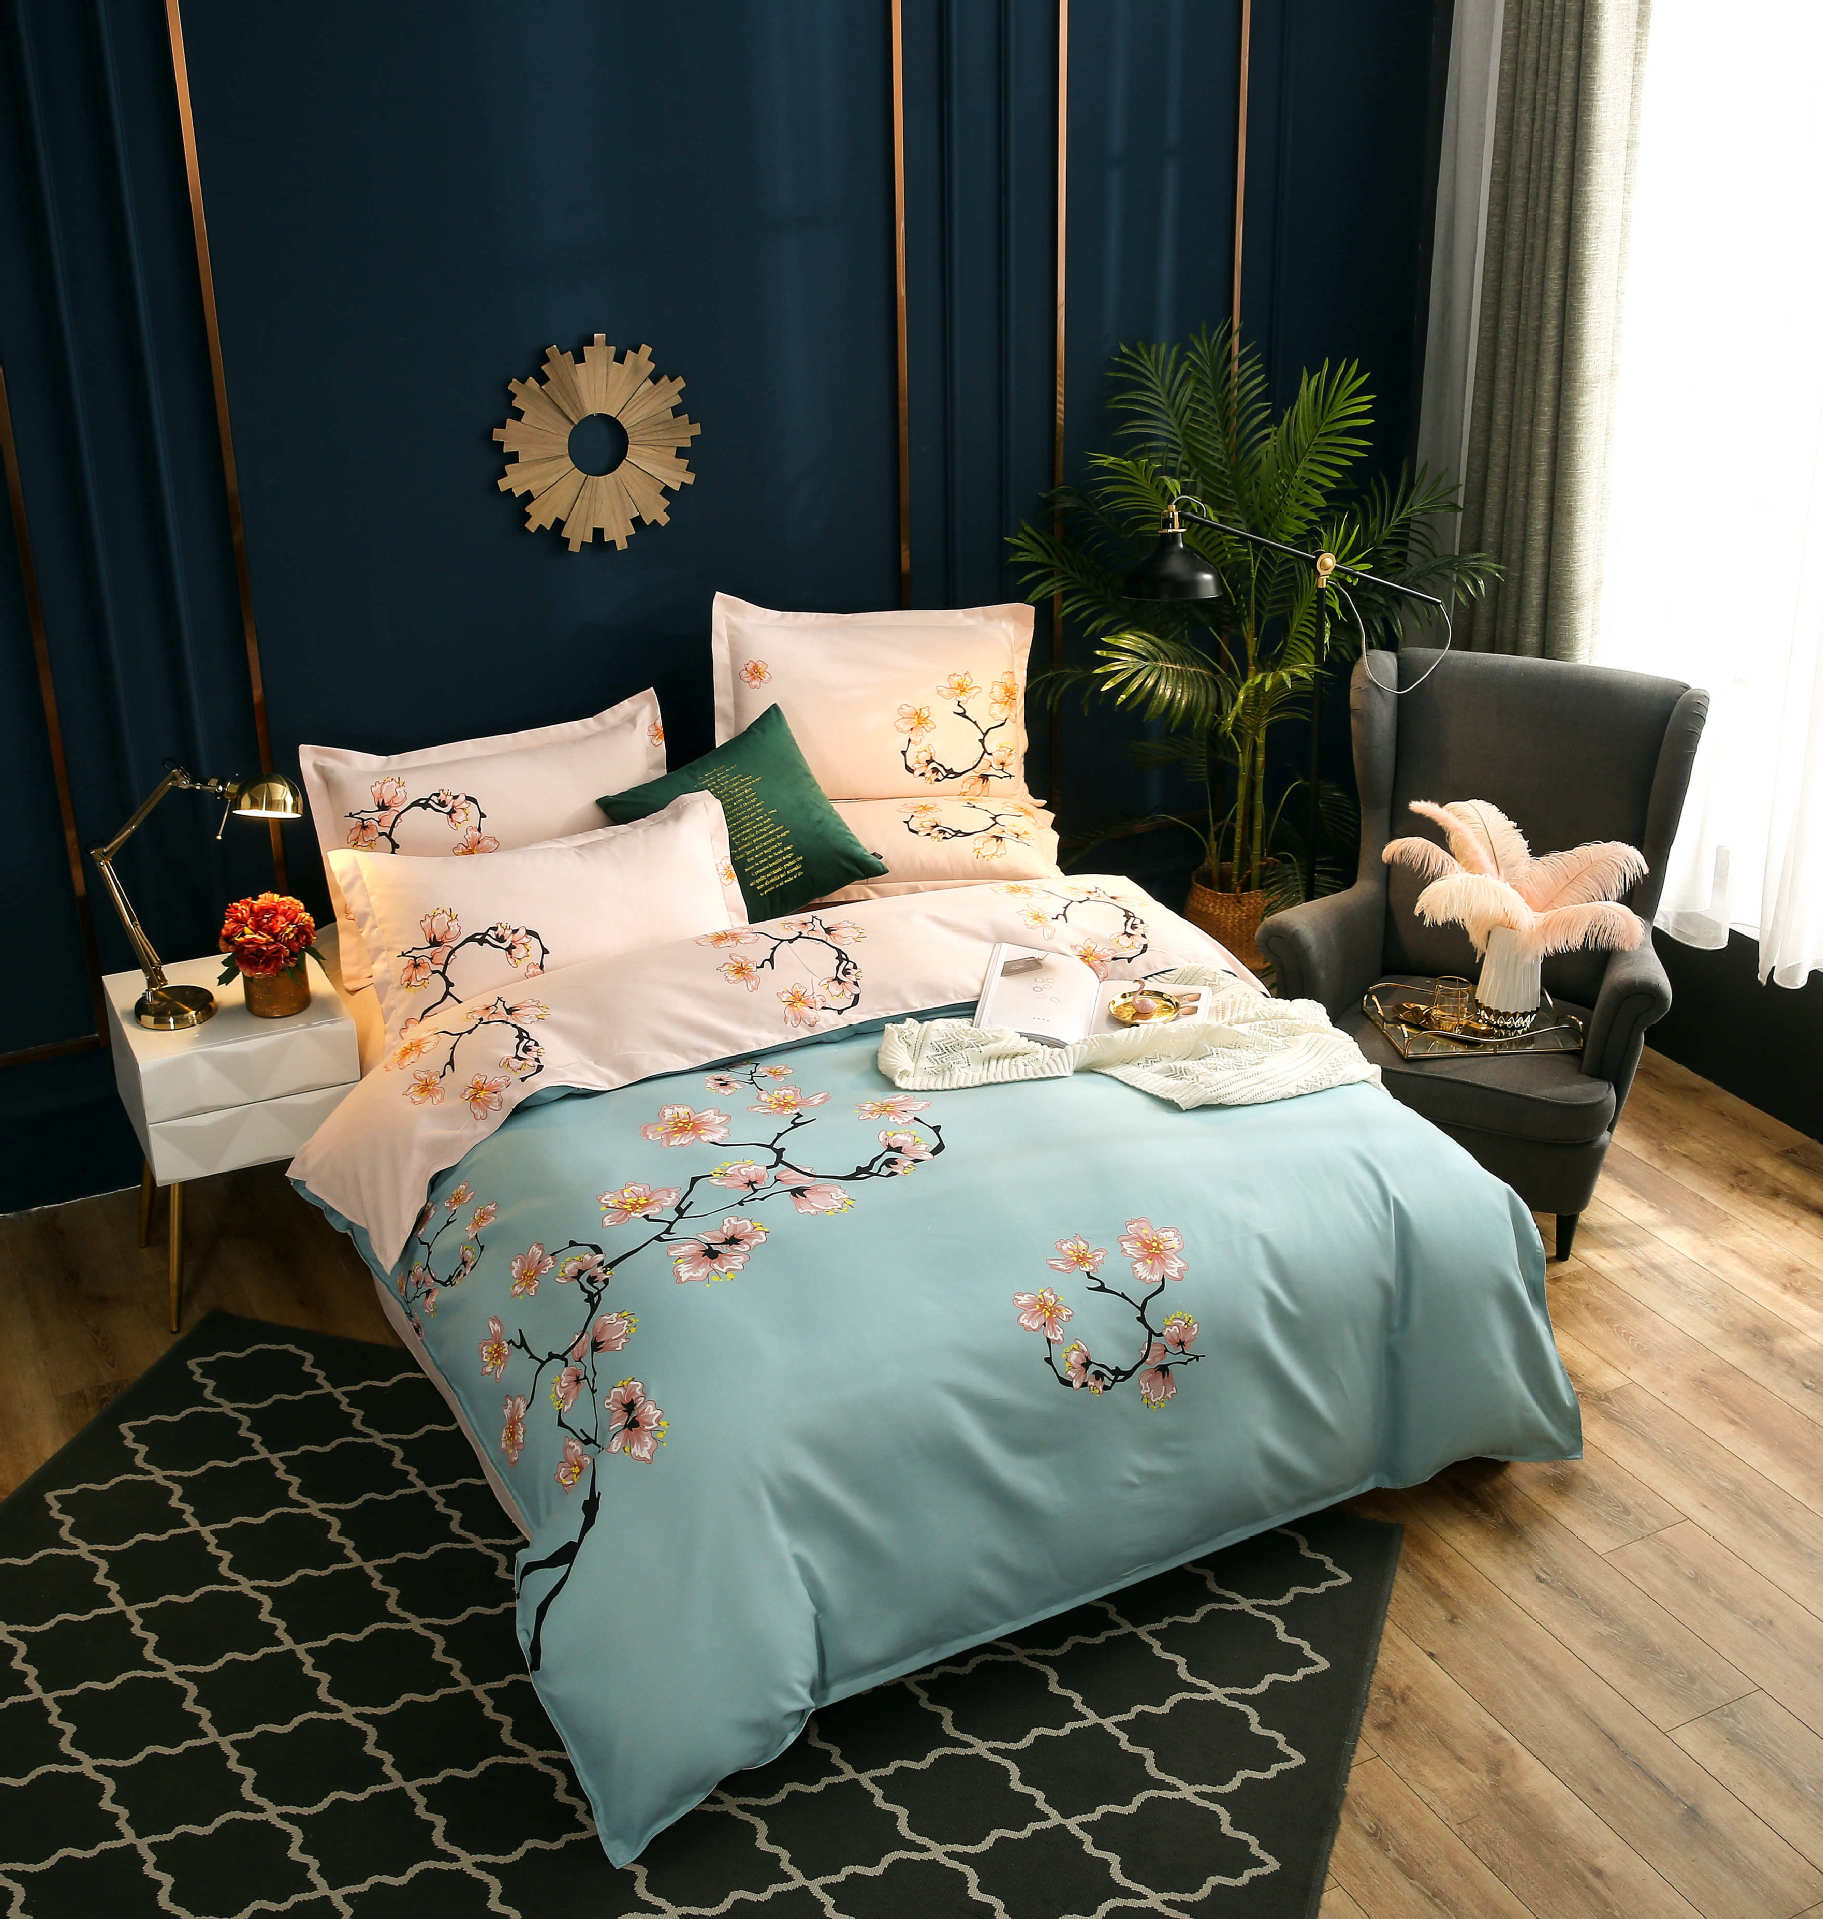 New Style AB Version Of Tribute Cotton Version Of The Flower Dyed Comfortable Wear-Resistant Soft Four-piece Set Bedding Article